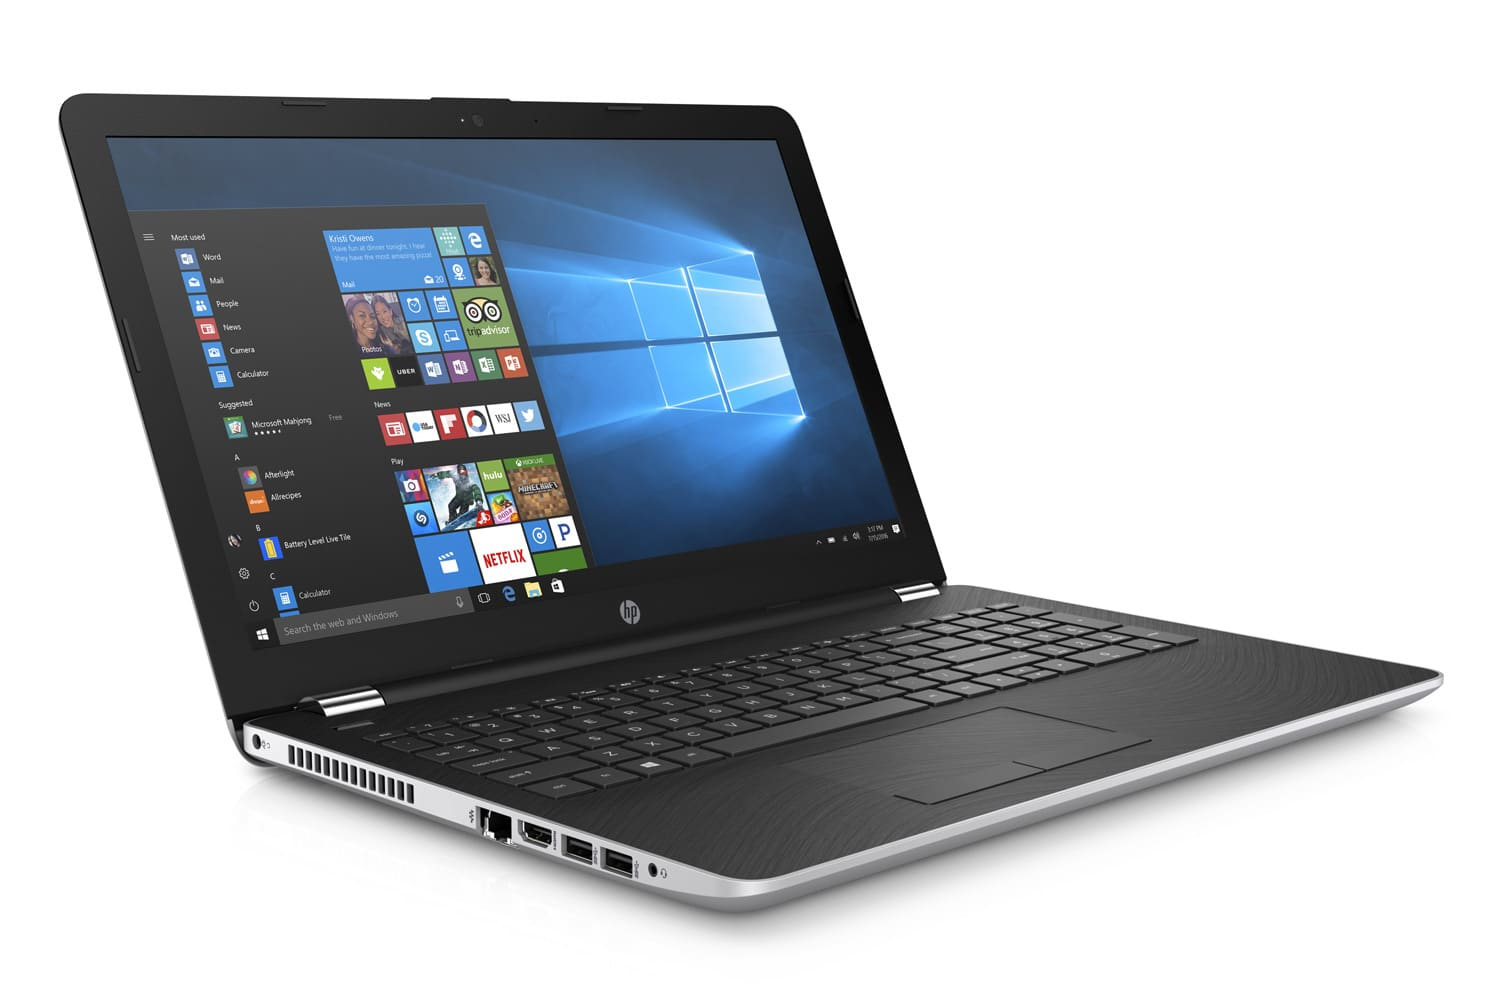 HP 15-bs033nf à 899€, PC portable 15 pouces i7 Kaby Radeon 530 8 Go